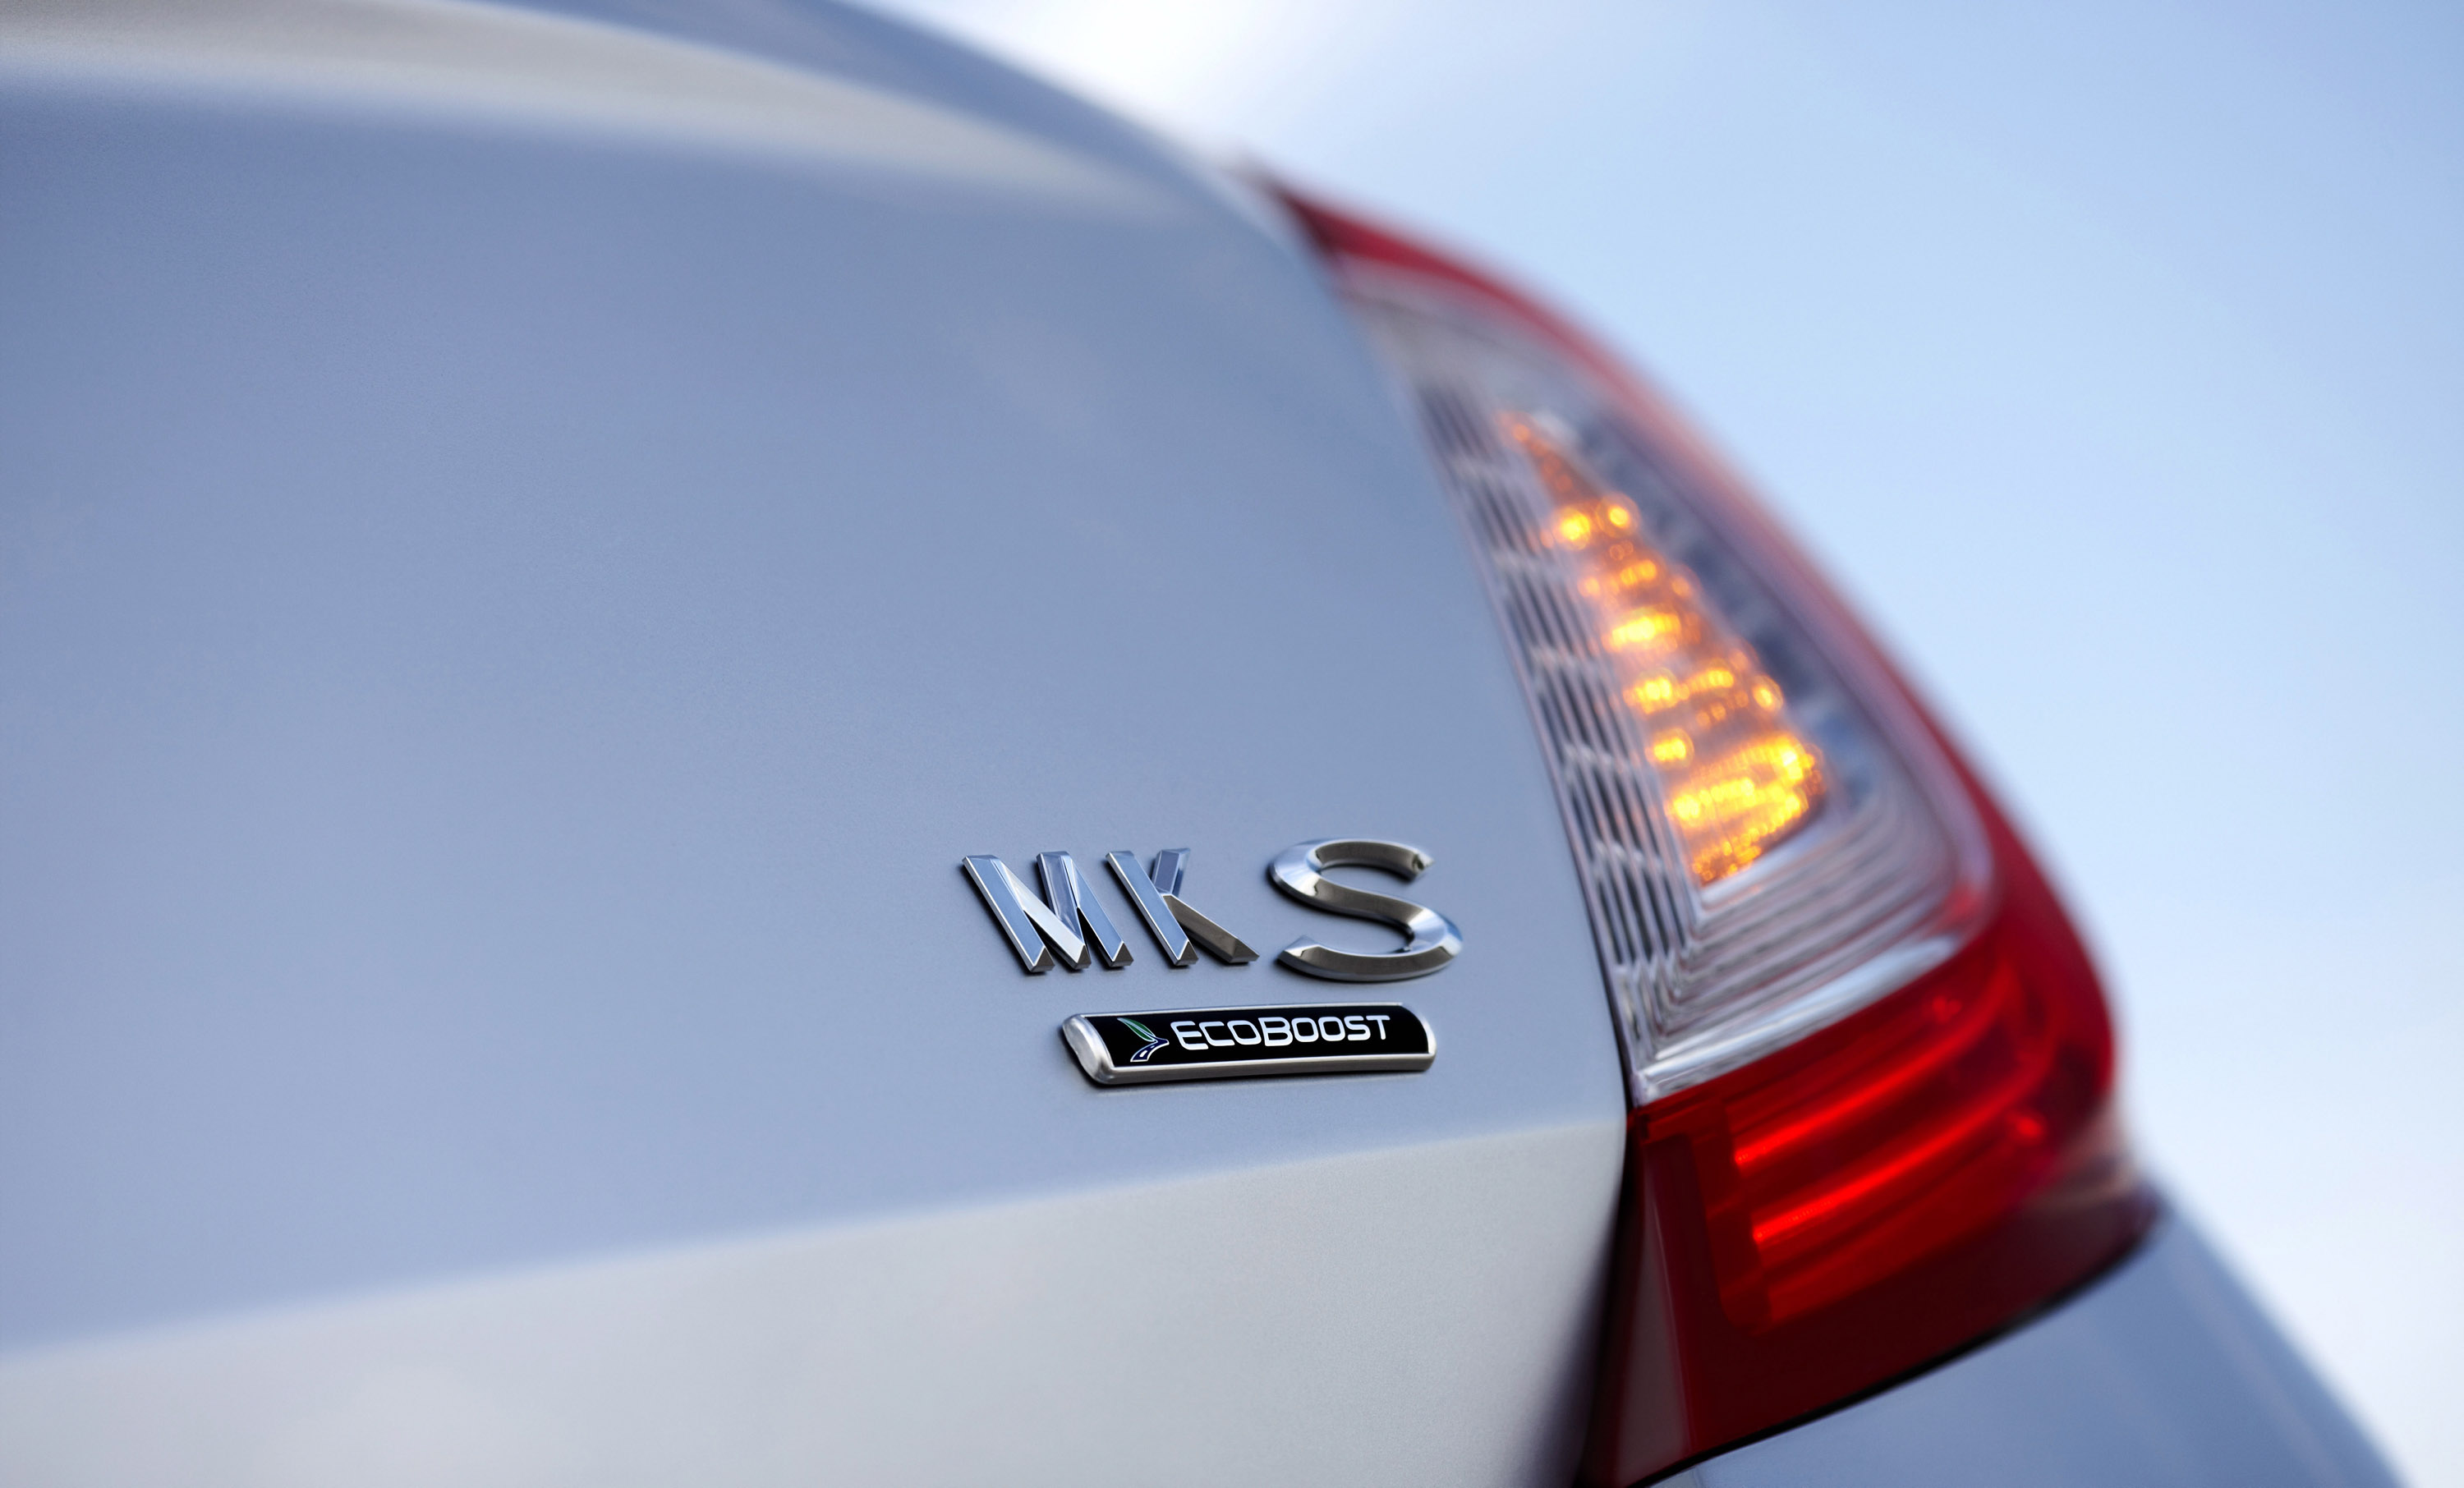 great test white hope mkz road hybrid the mks lincoln